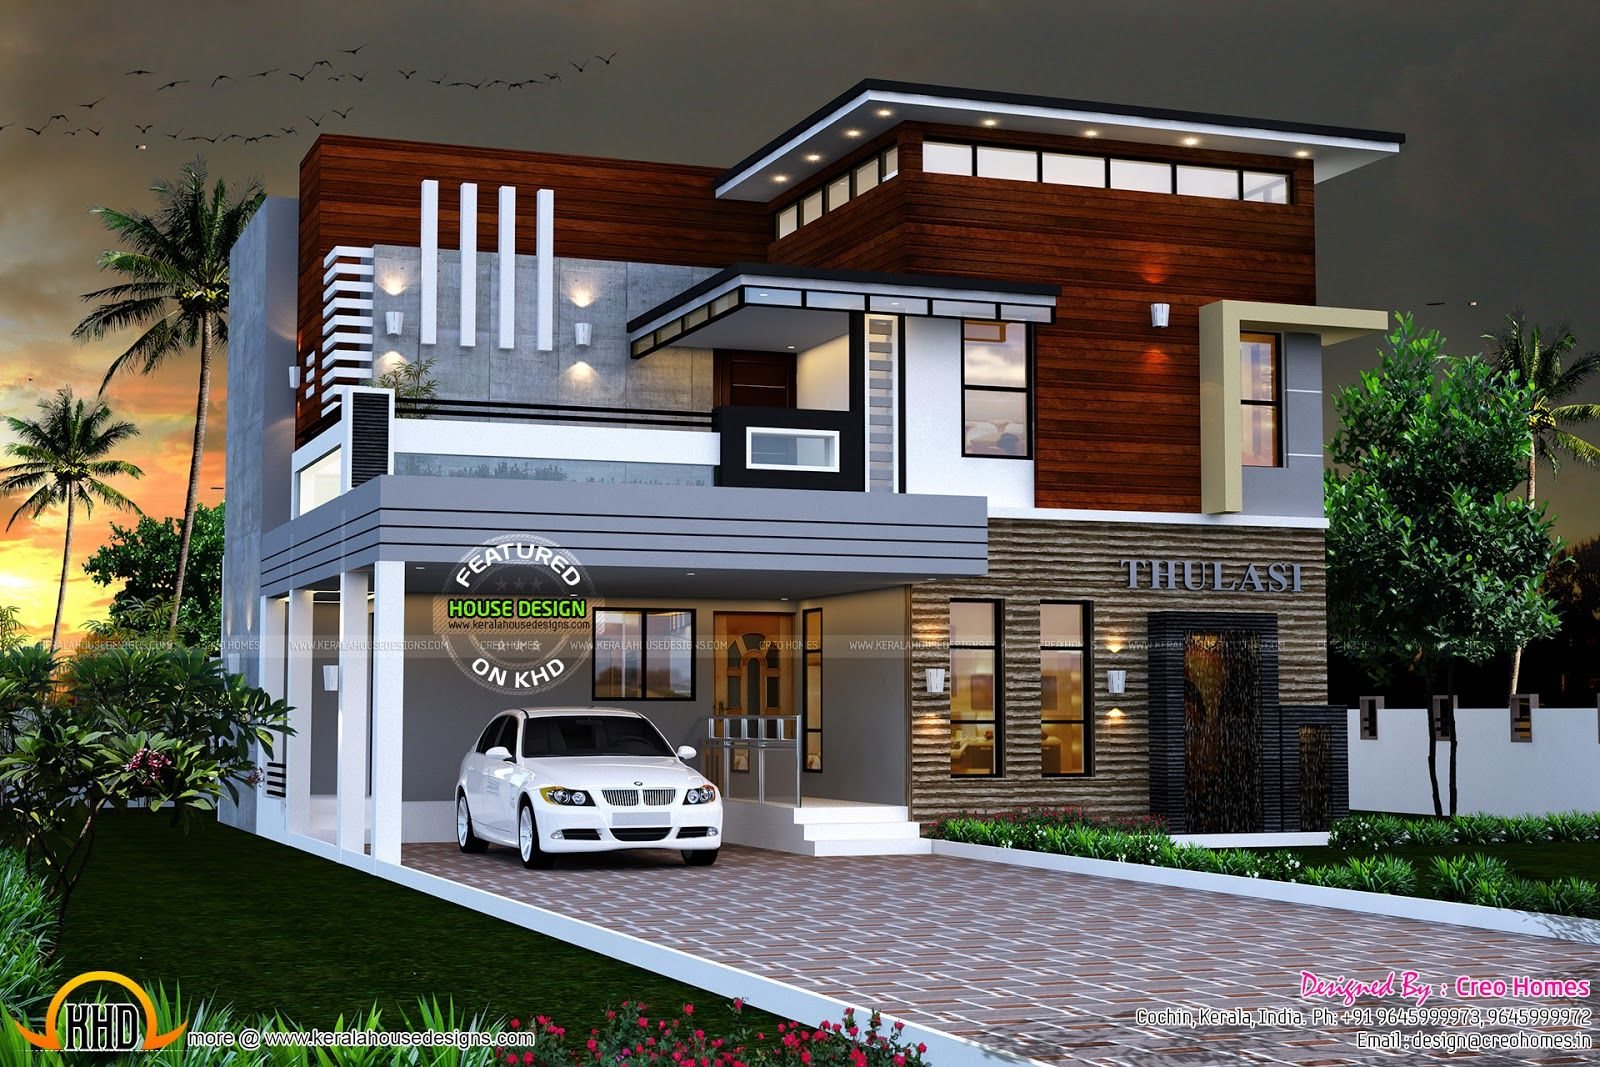 Eterior design modern small house architecture building for Modern small house design